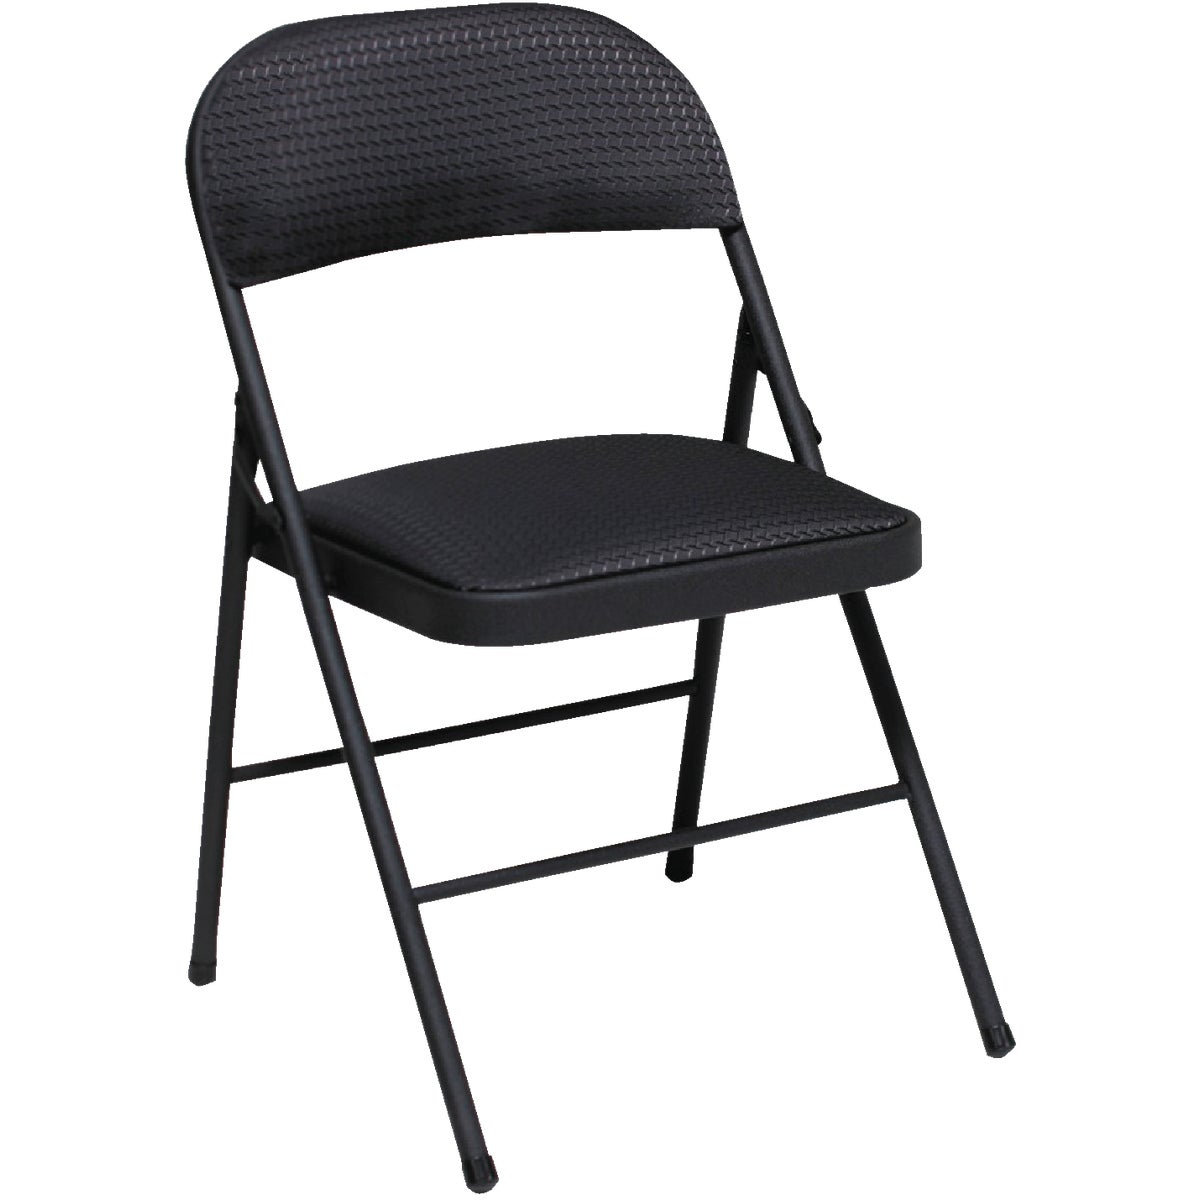 Cosco Home & Office BLK FABRIC FOLDING CHAIR 14-995-TMS4